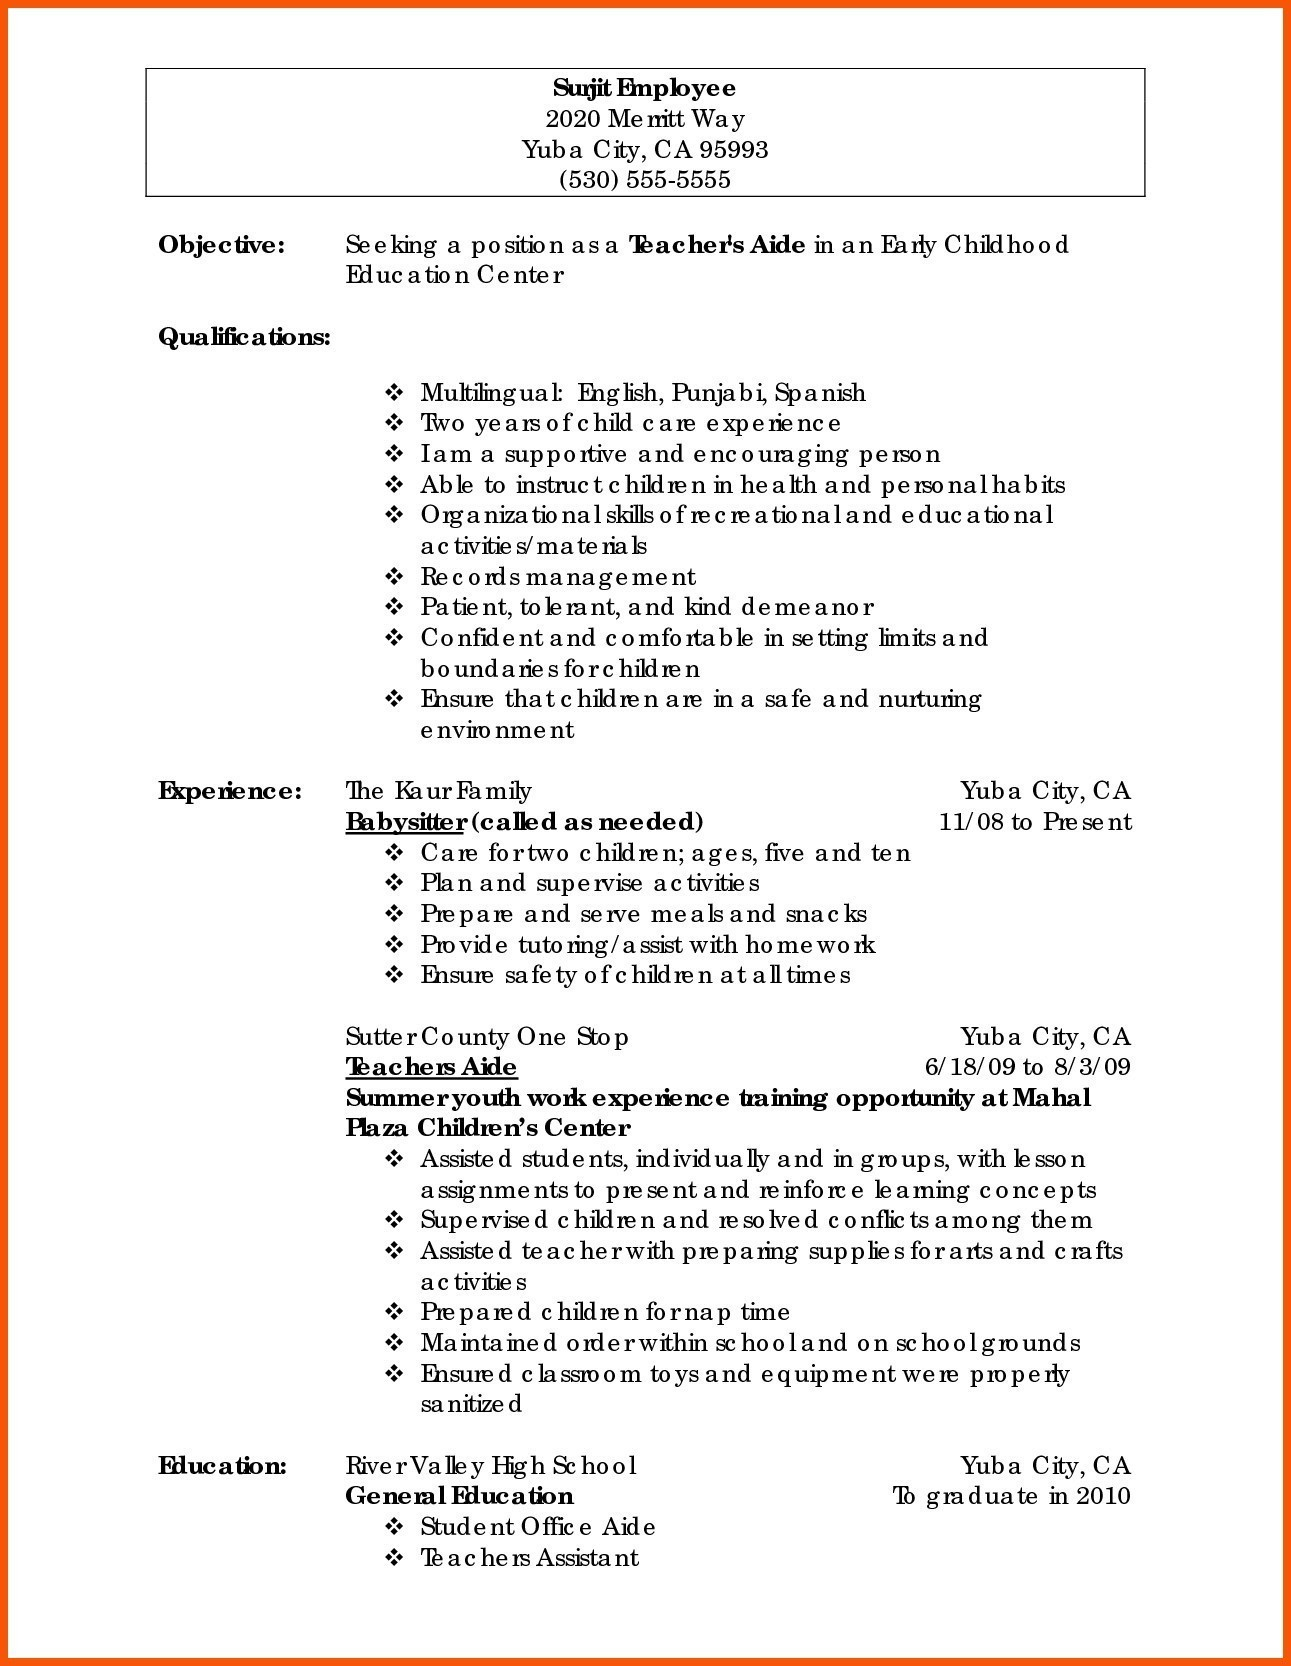 resume hair stylist template example-Resume for Hairstylist Awesome What is Resume Fresh Bsw Resume 0d Sample Resume Resume tonyworld 1-l